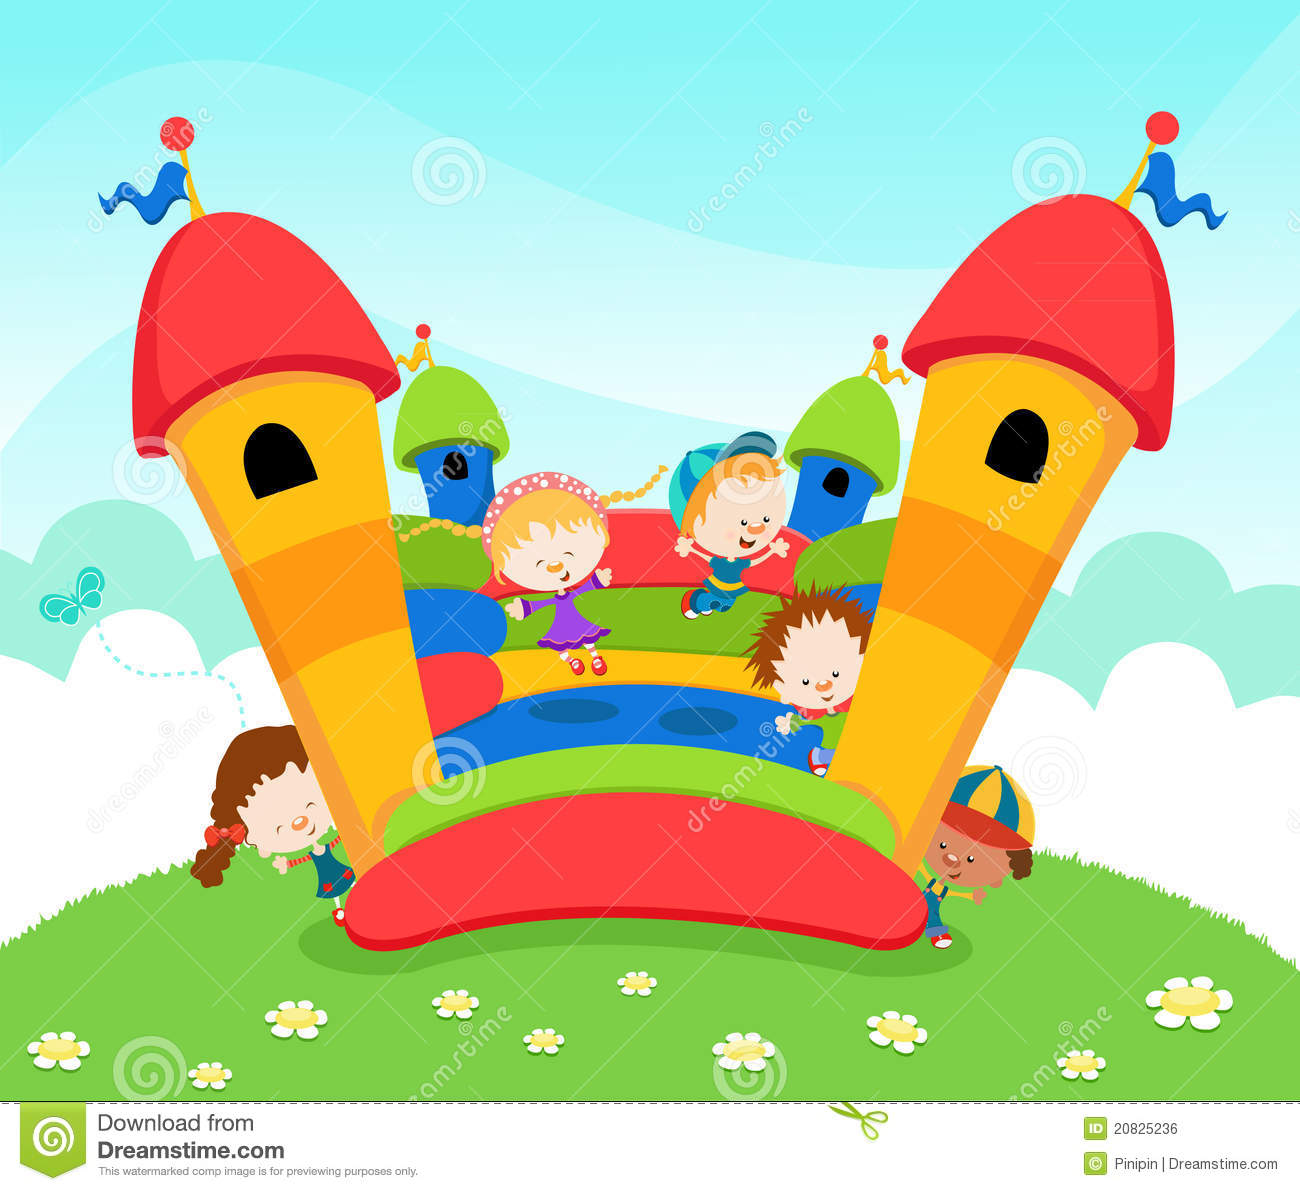 hight resolution of bounce house and slide clipart